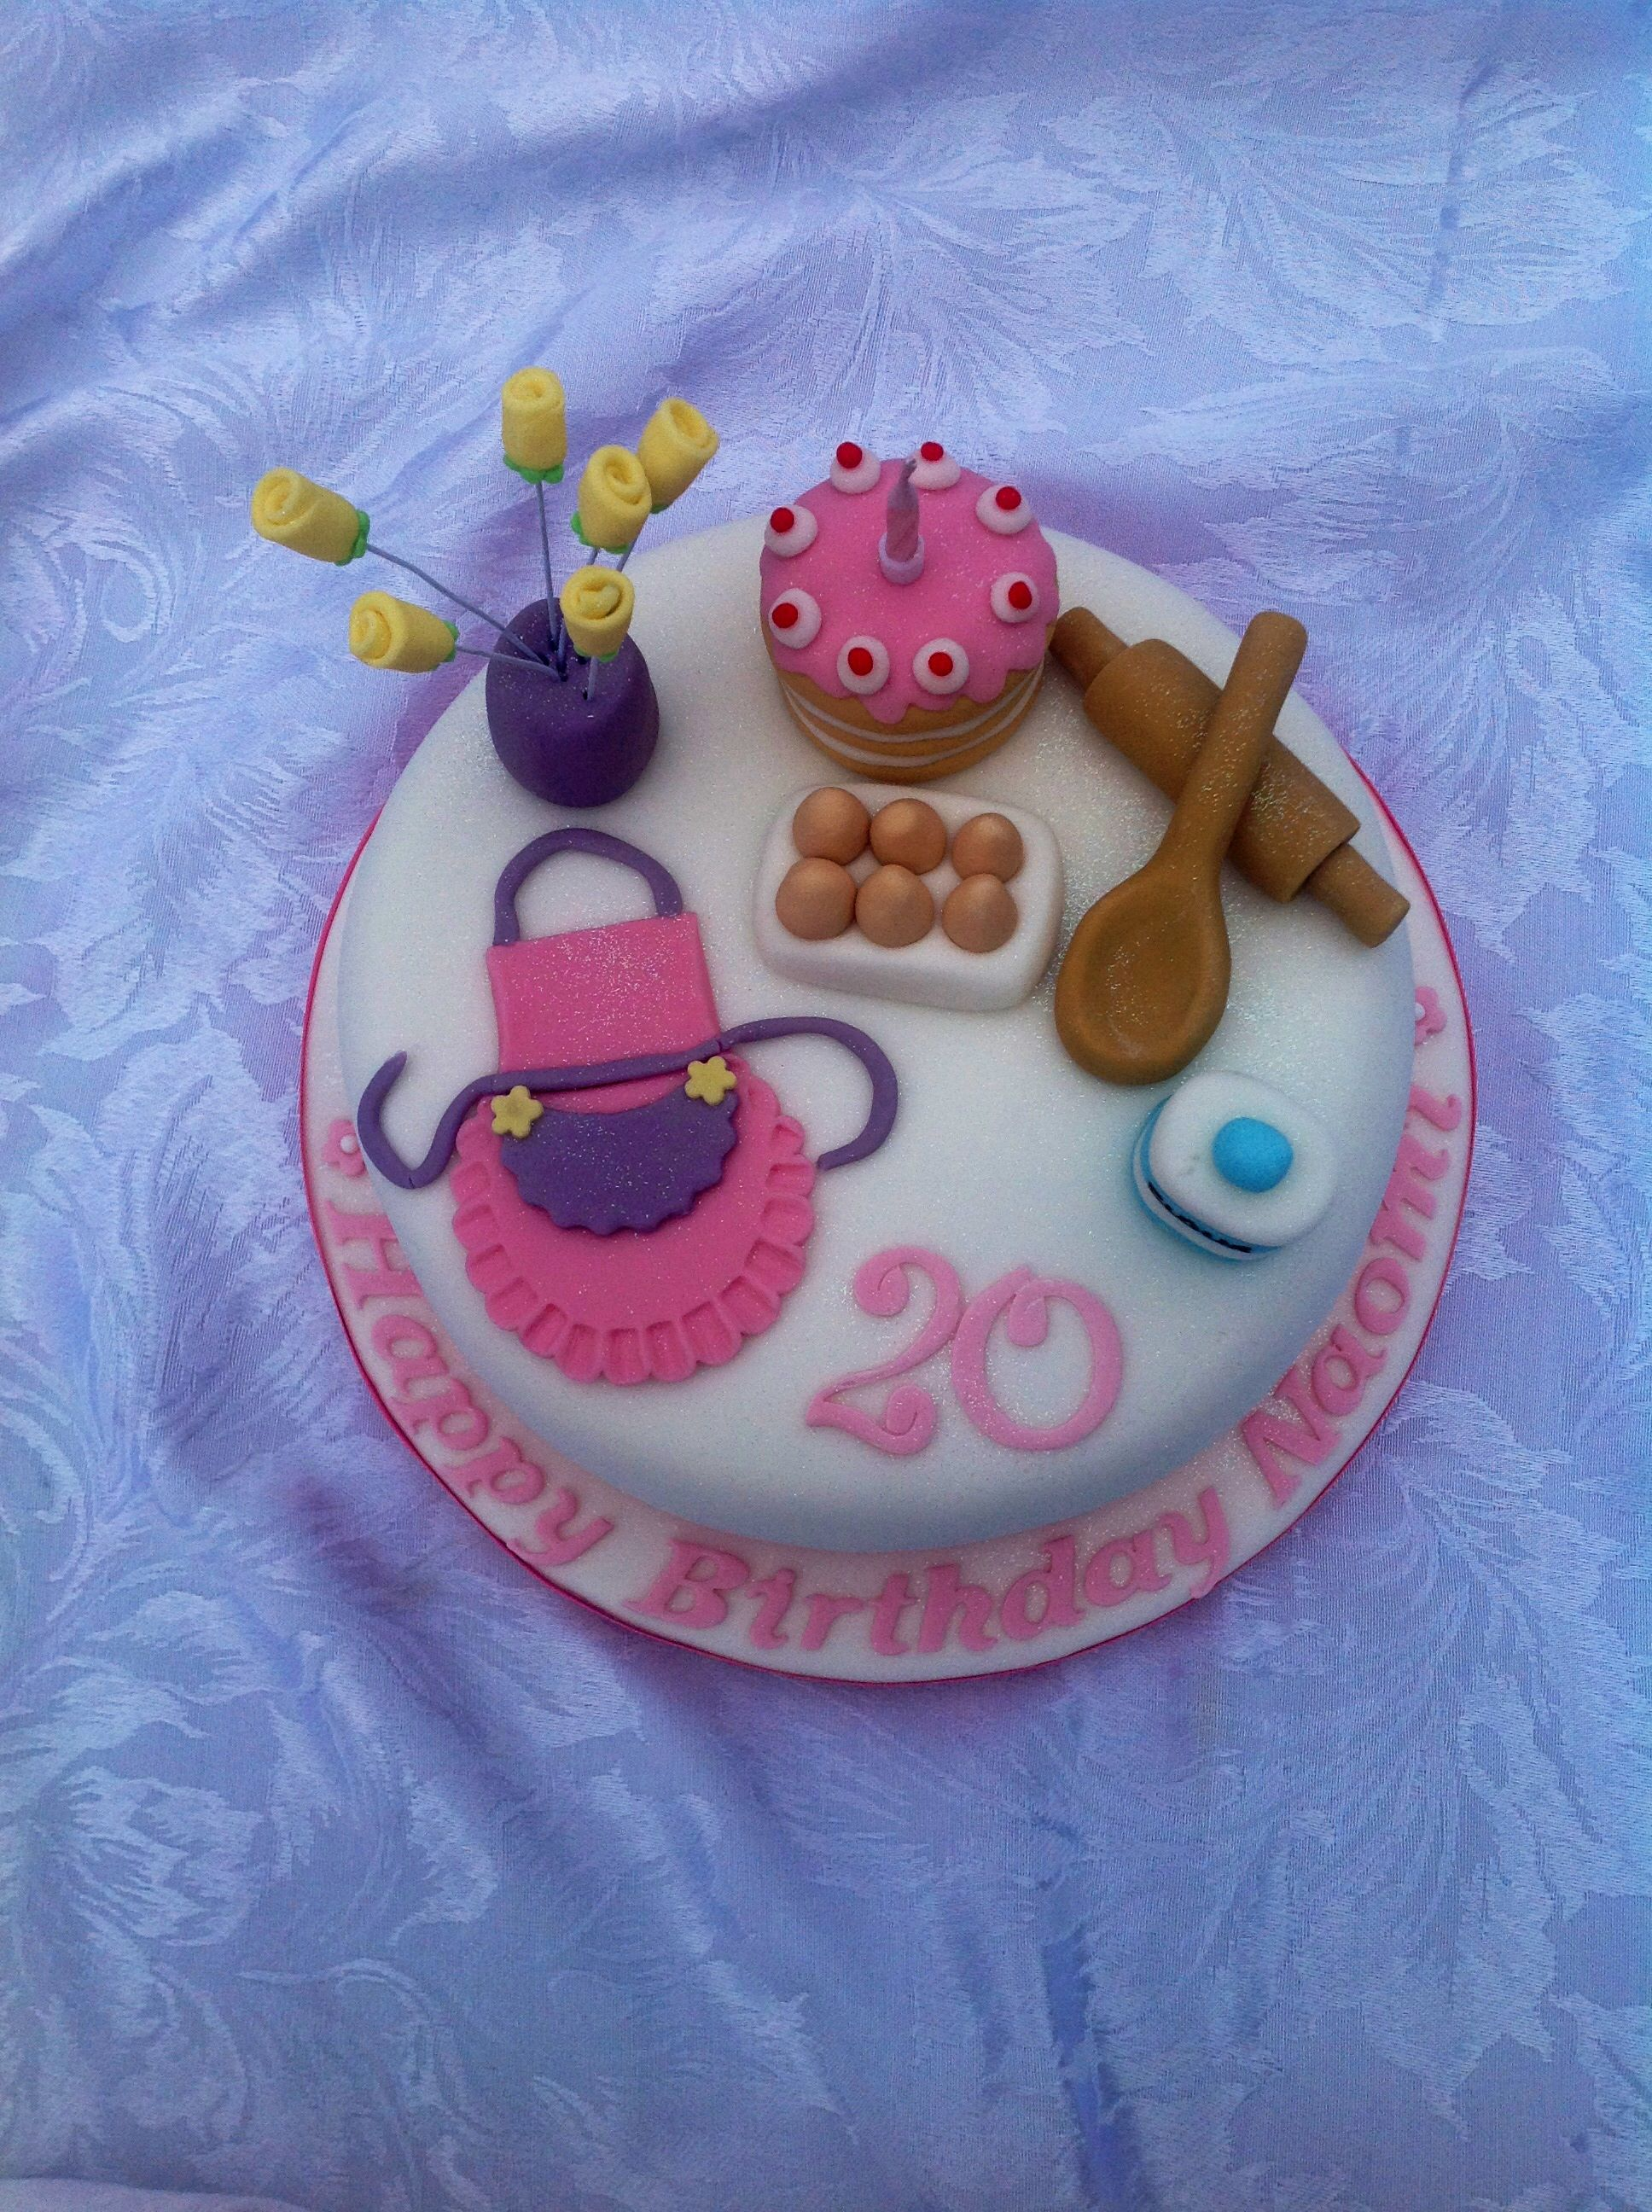 Magnificent 8 Baking Themed Cake With Images Fondant Cake Designs Themed Personalised Birthday Cards Vishlily Jamesorg